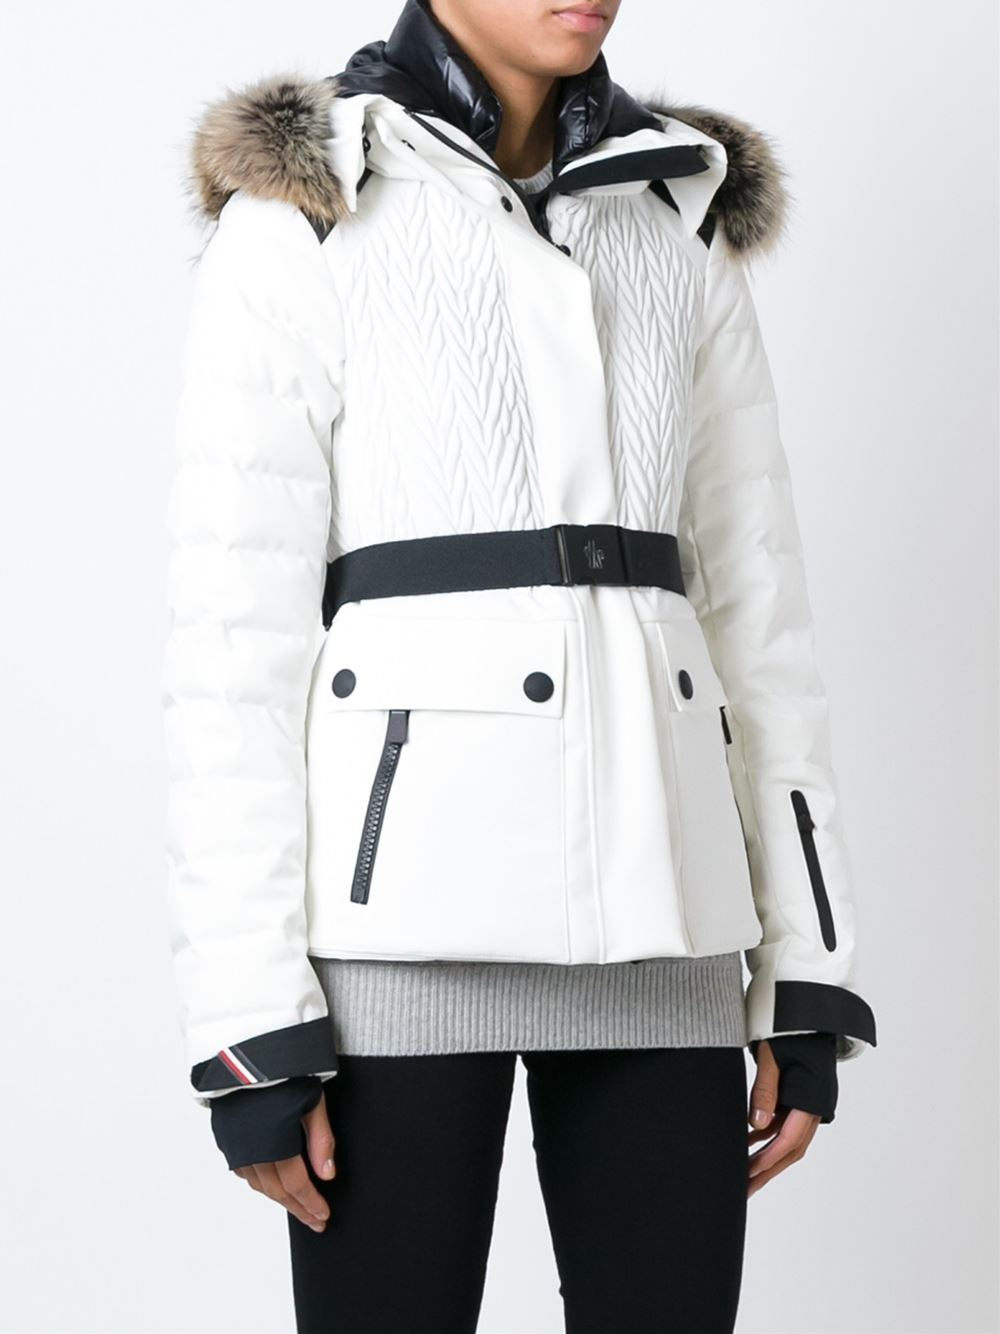 633f8d92bc1f ... women clothing type jackets d12a7 uk moncler grenoble coyote fur trim  padded jacket in white lyst 9ddd9 386c8 ...